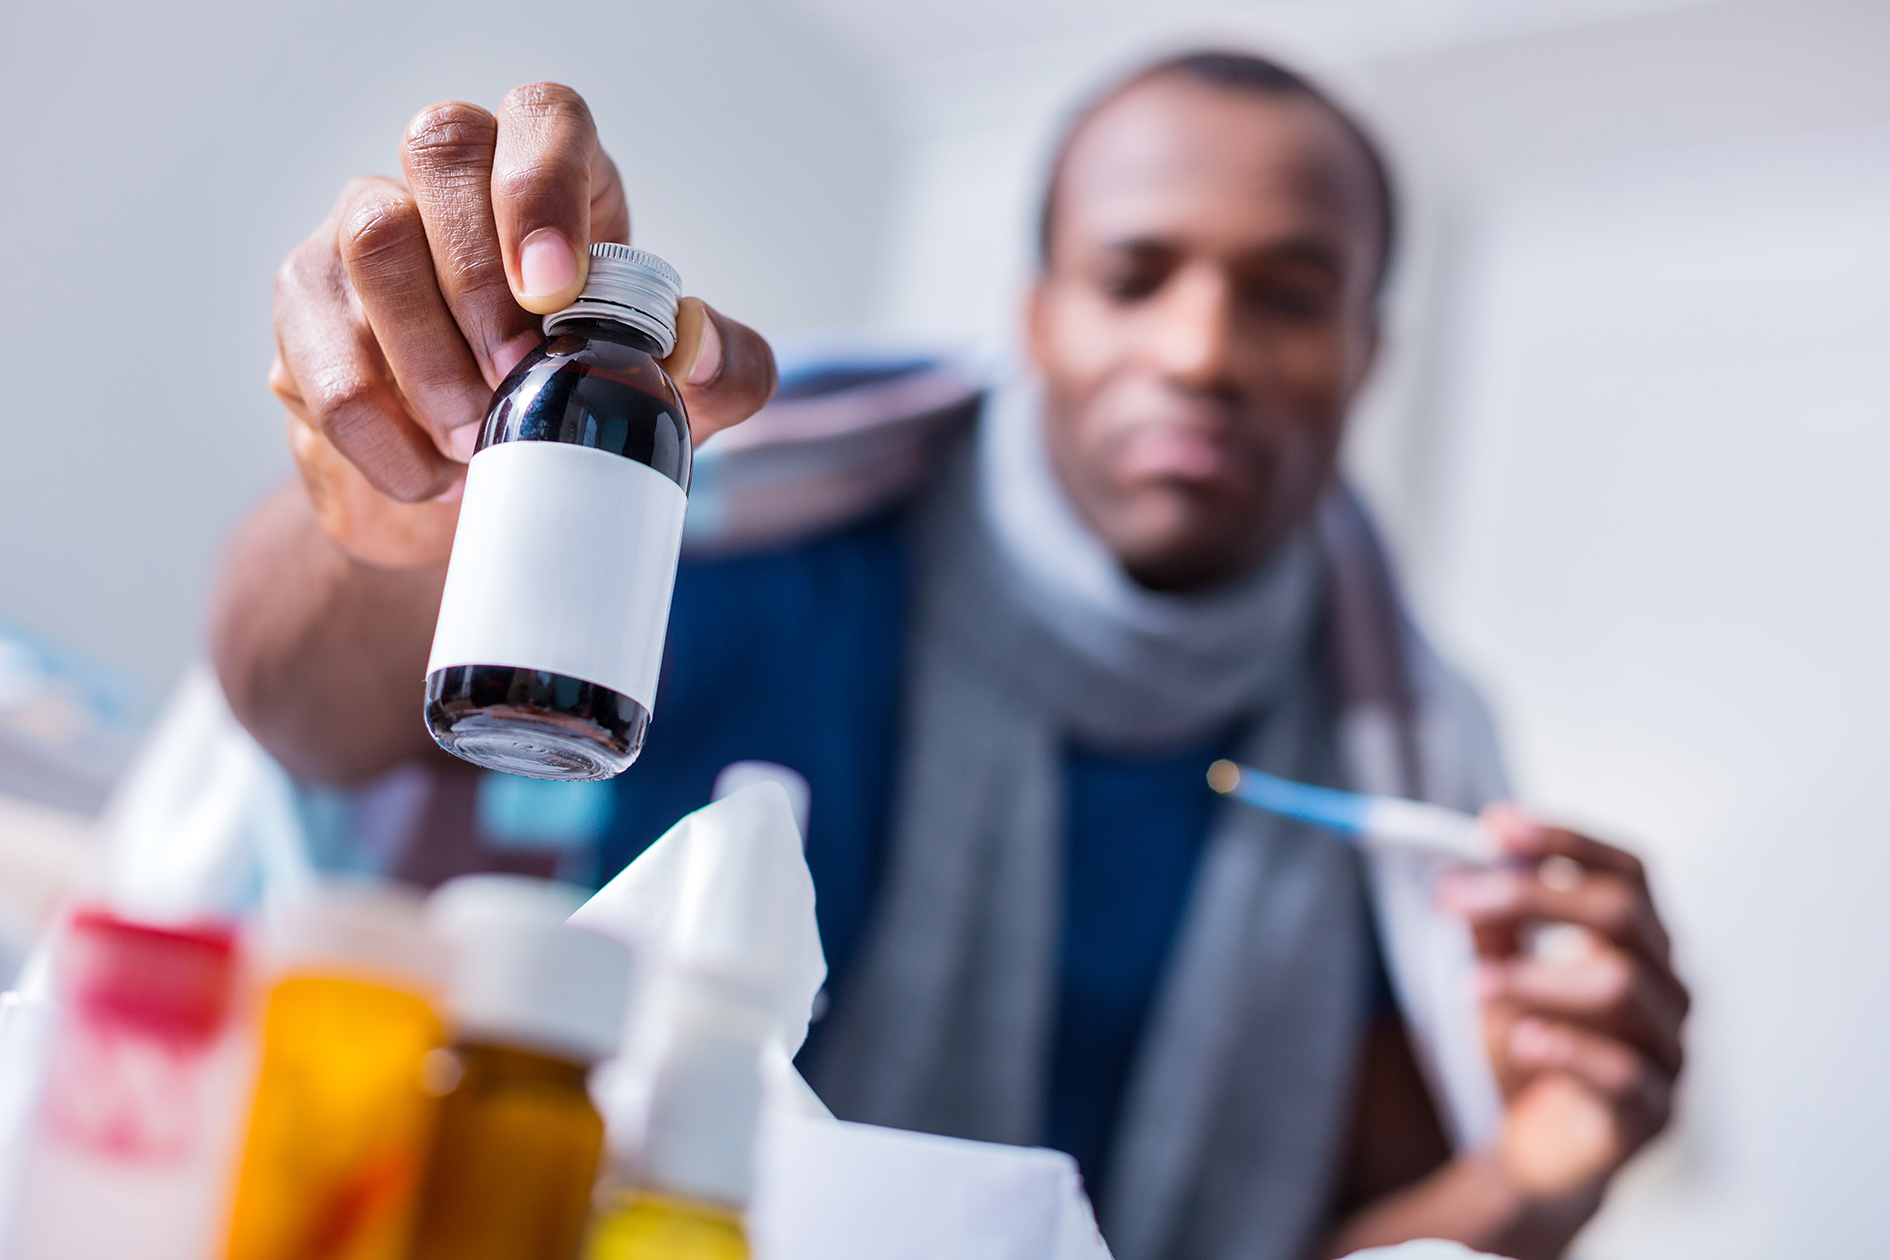 Mpumalanga MEC for Health forced to take action as chronic medication supplies run dry.